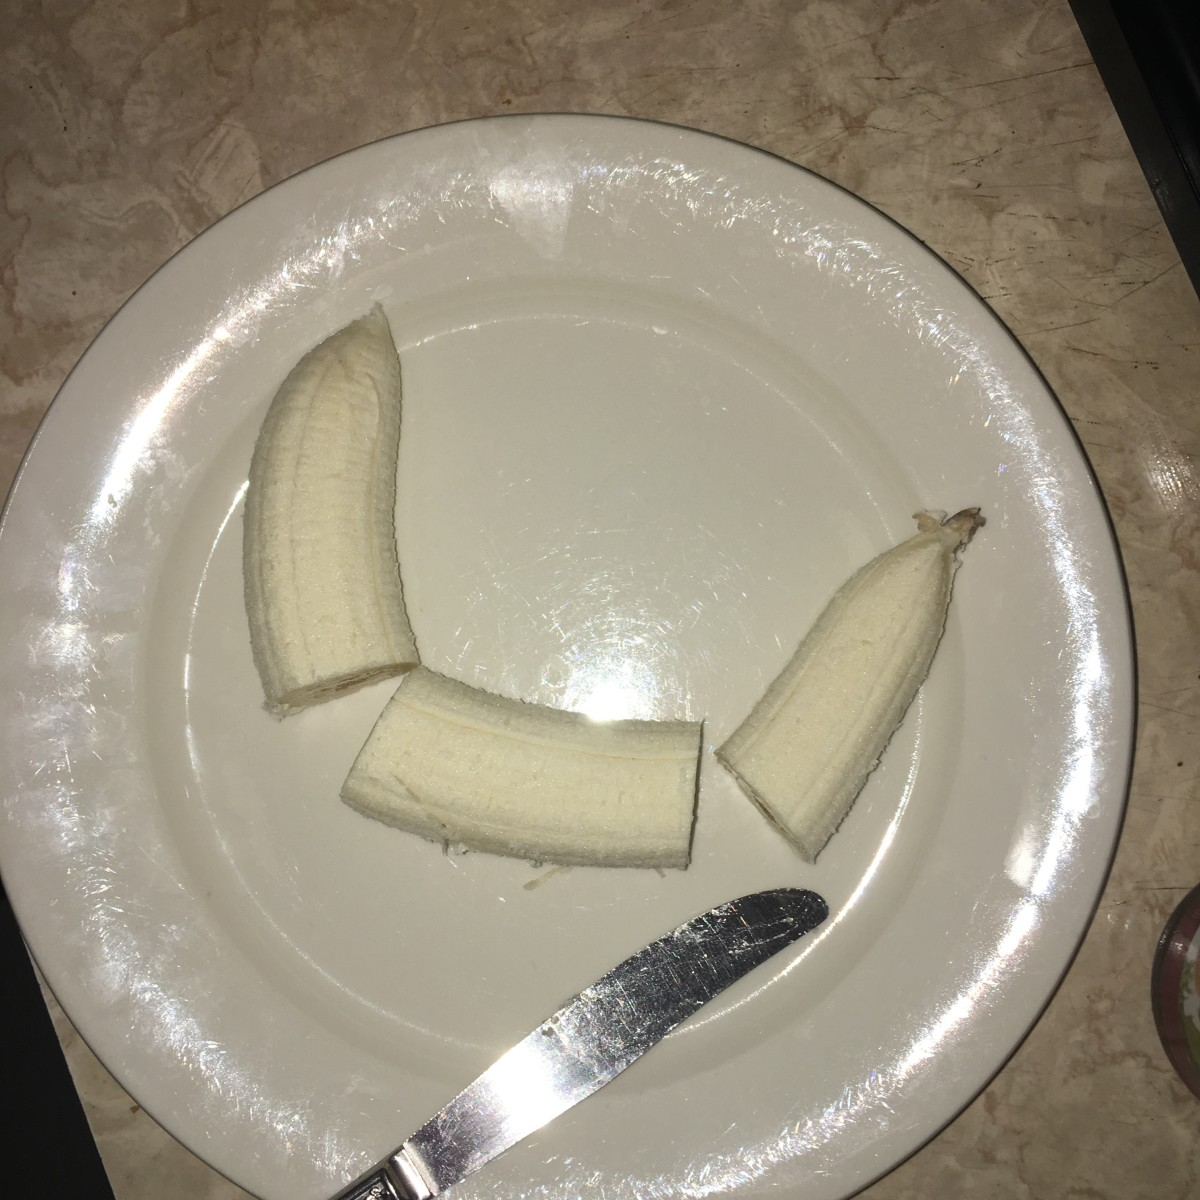 Cut the bananas into thirds